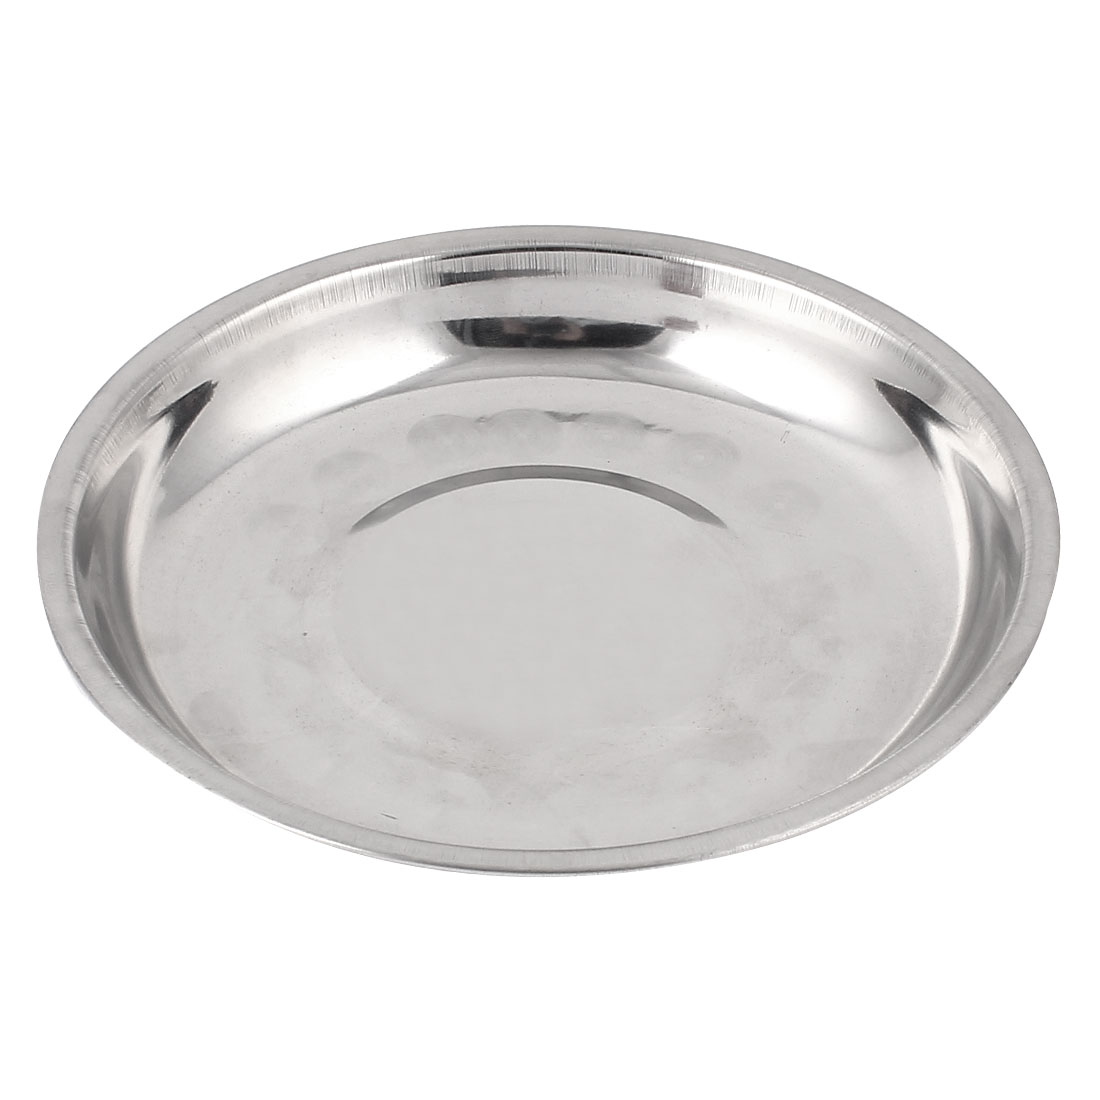 Round Stainless Steel Dinner Plate Dish Food Fruit Holder Container Tray 15cm